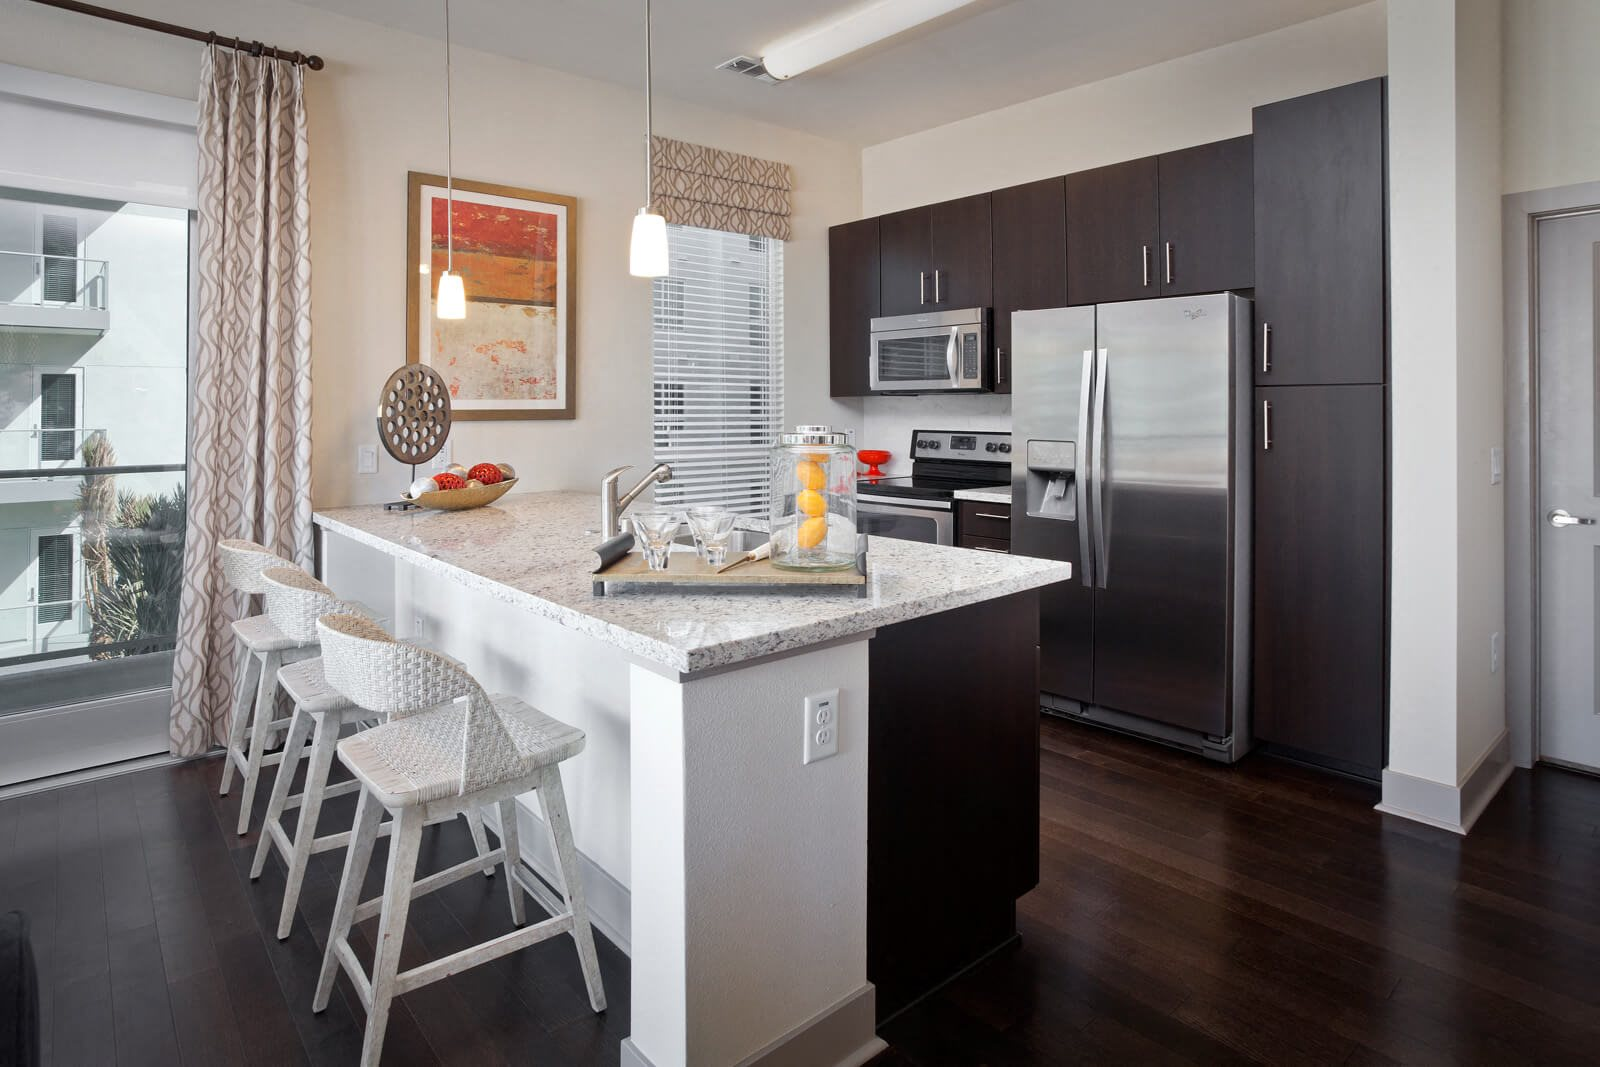 Open-Concept Kitchens with Stainless Steel Appliances at South Park by Windsor, 939 South Hill Street, CA